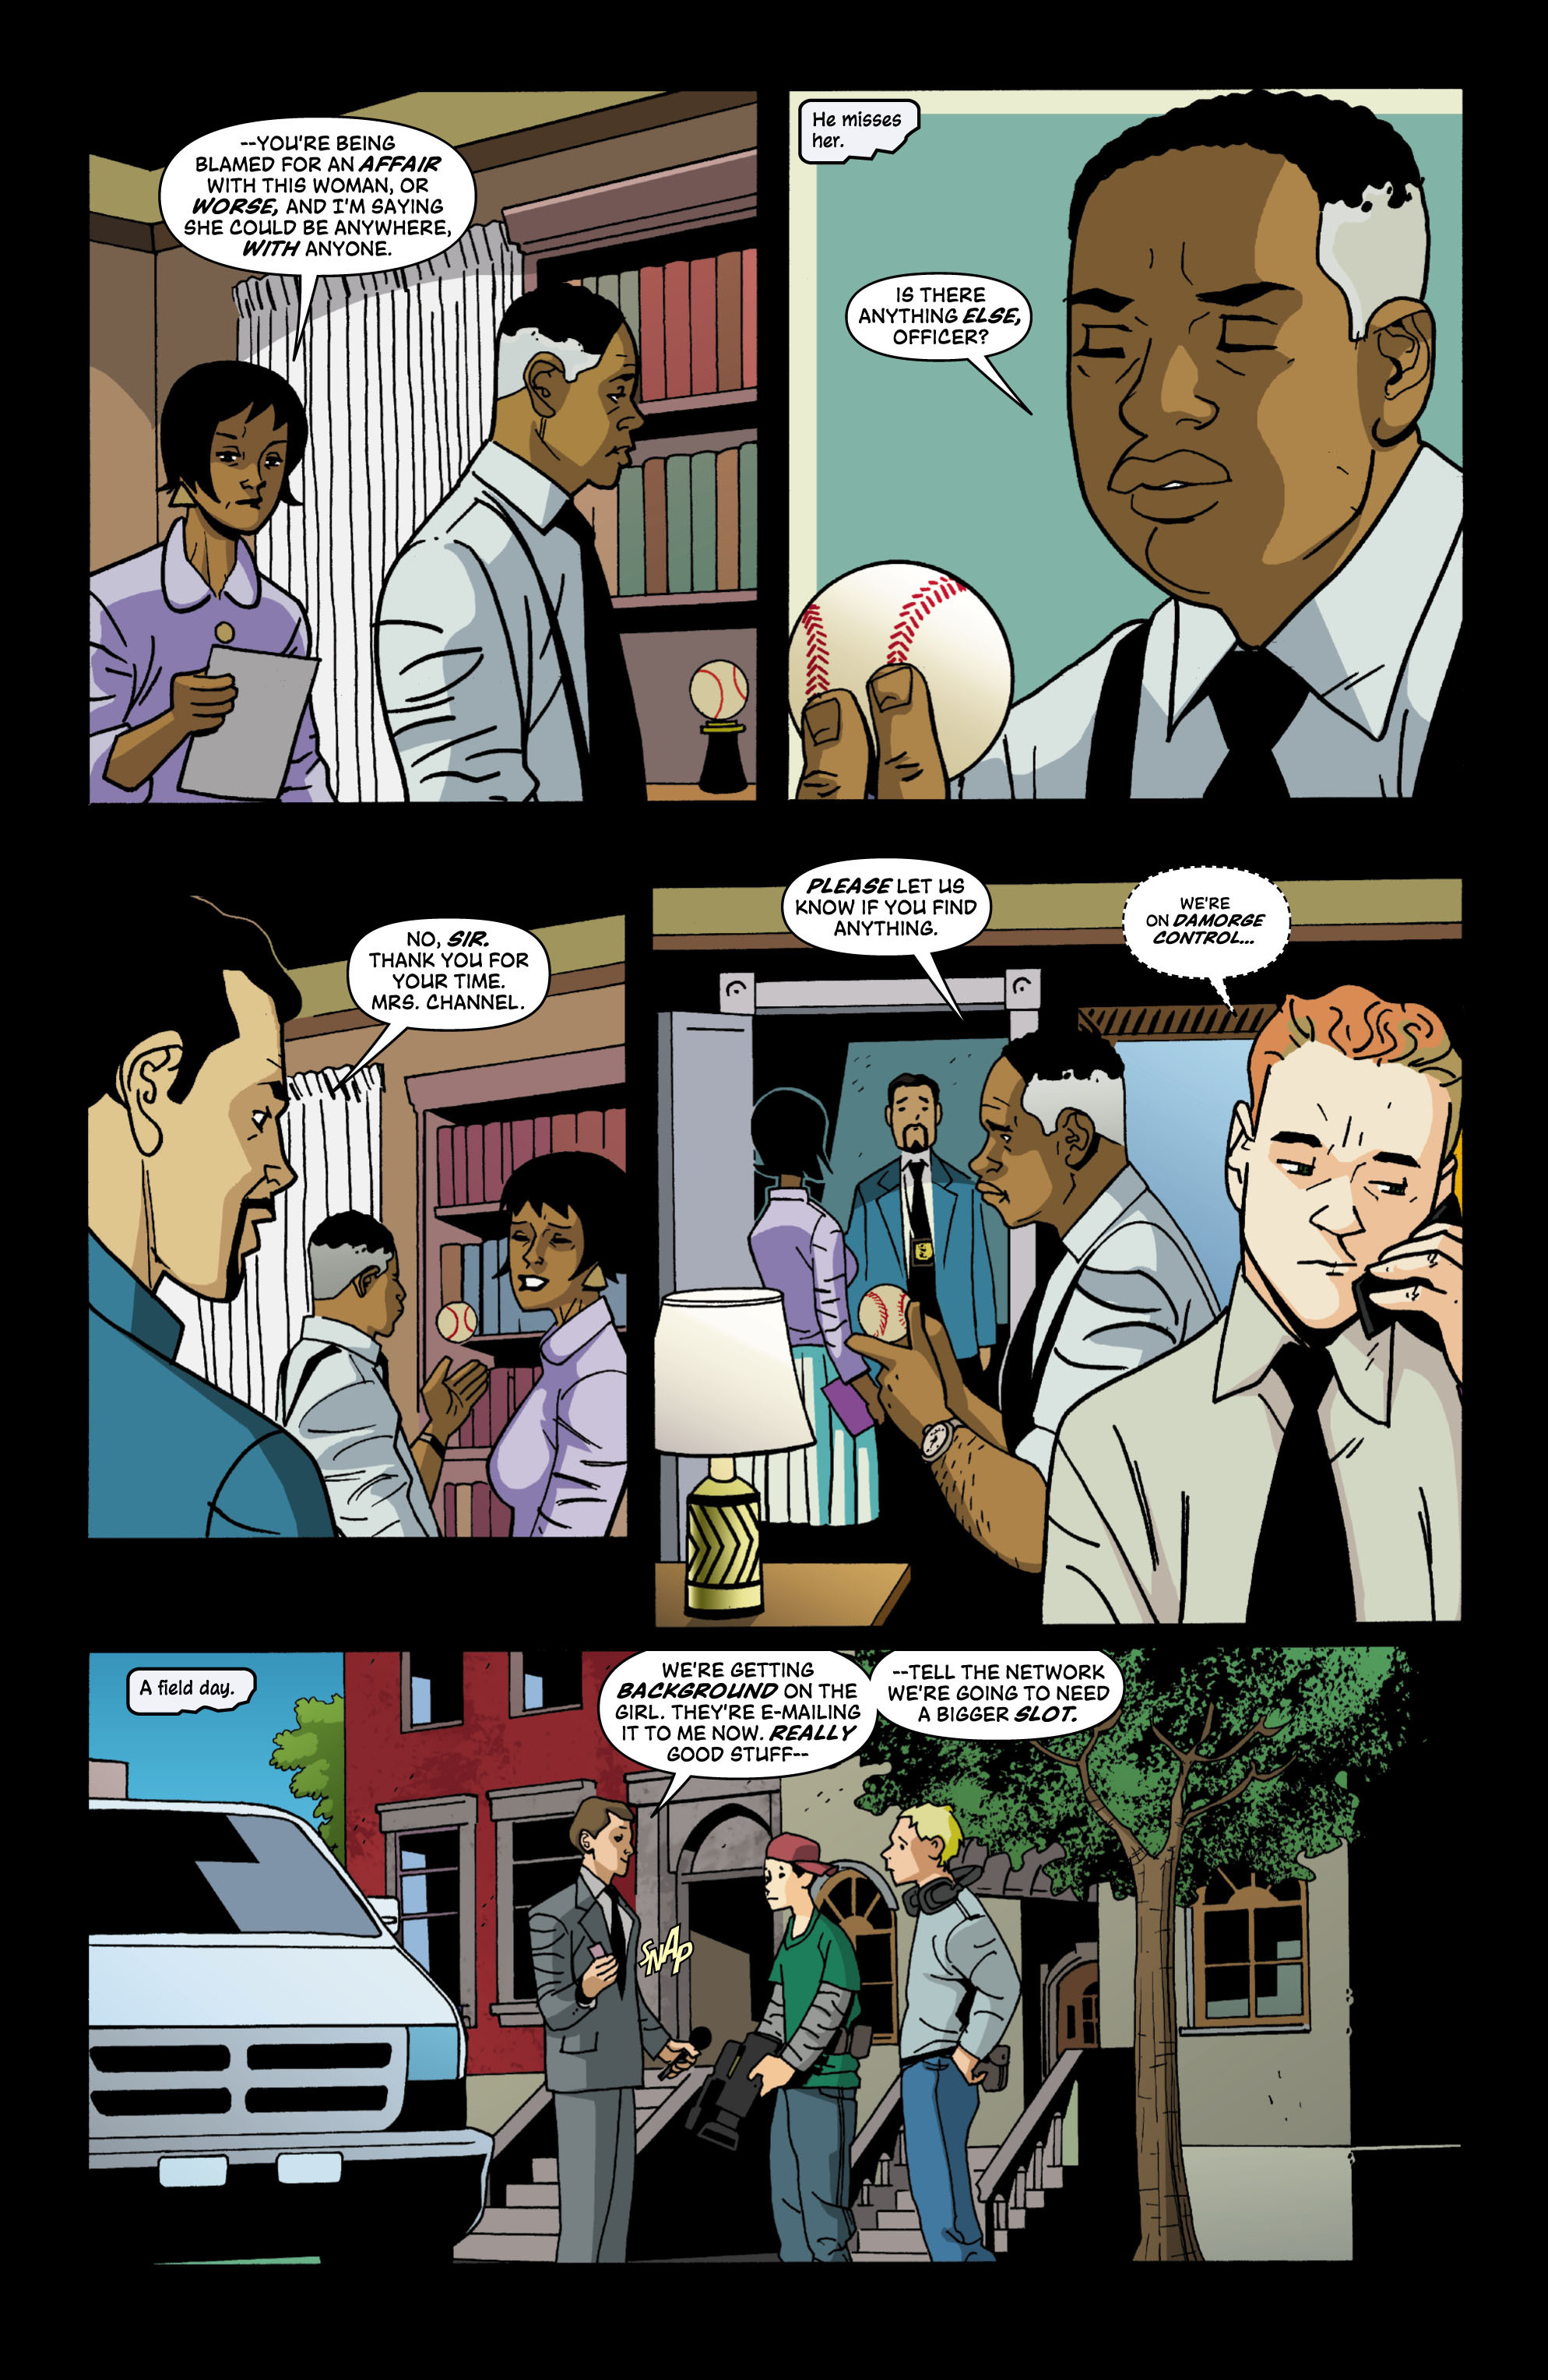 Read online Red Herring comic -  Issue #4 - 9